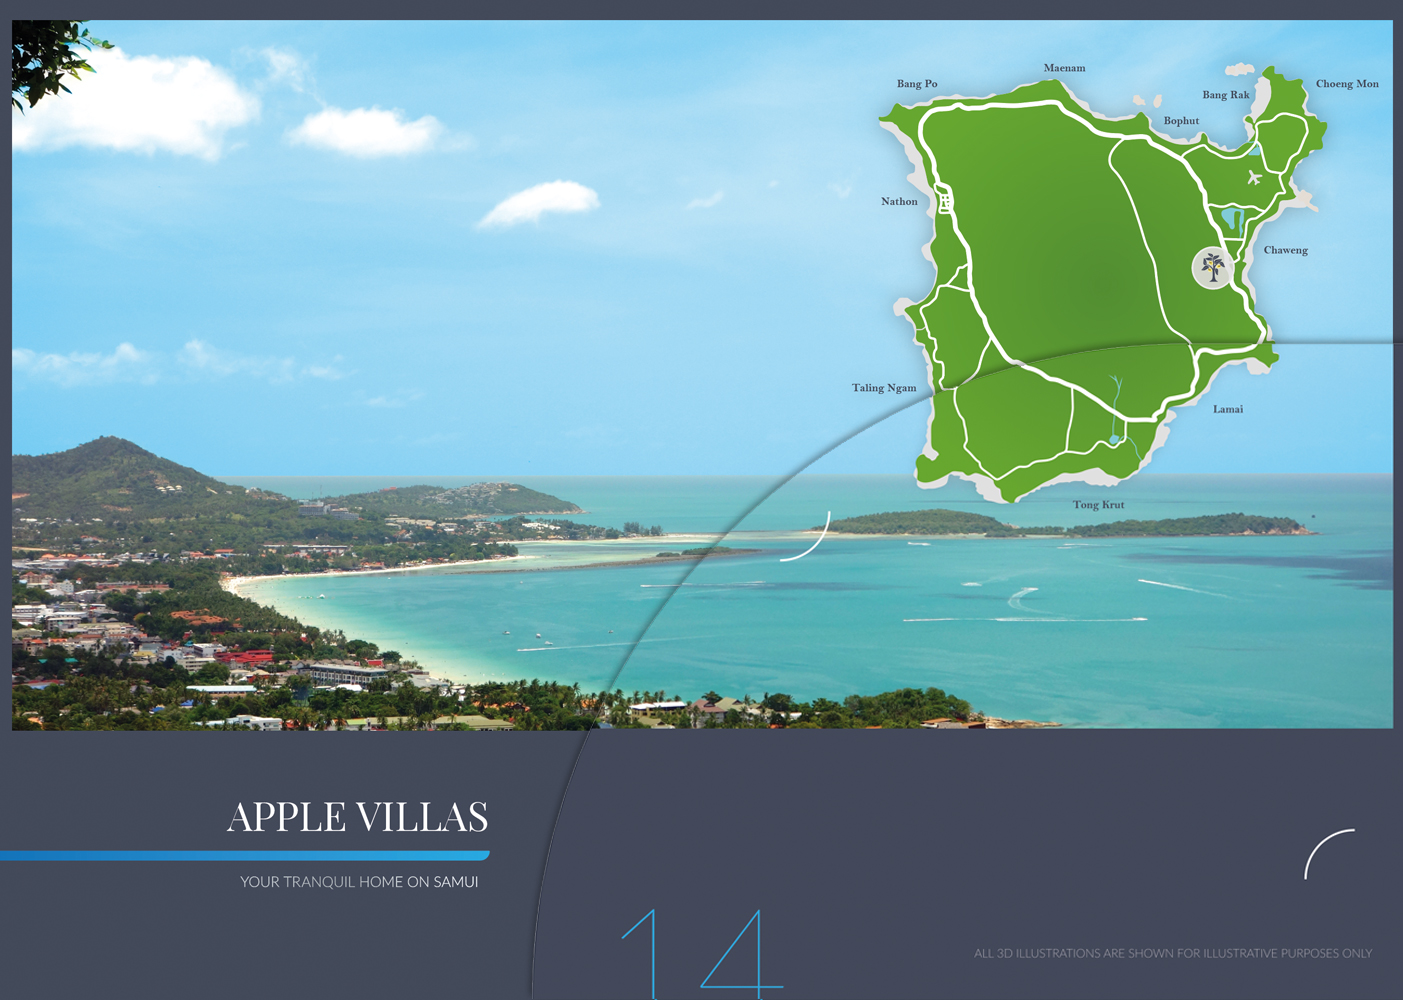 Apple Villas brochure design and printing on Koh Samui